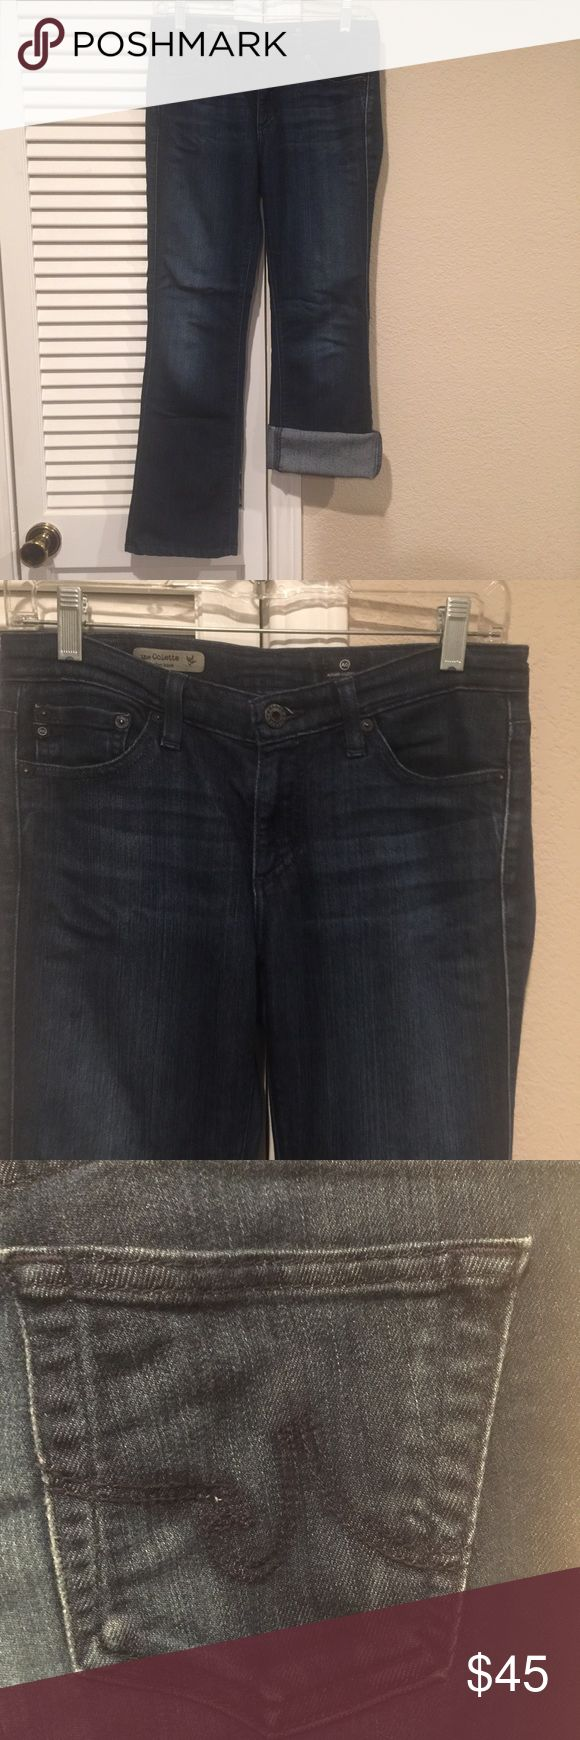 """ADRIANO GOLDSCHMIED THE COLETTE SLIM BOOT CUT ADRIANO GOLDSCHMIED THE COLETTE SLIM BOOT CUT. Size 27R Approx 28"""" inseam. The soft in these jeans is delicious! AG Adriano Goldschmied Jeans"""